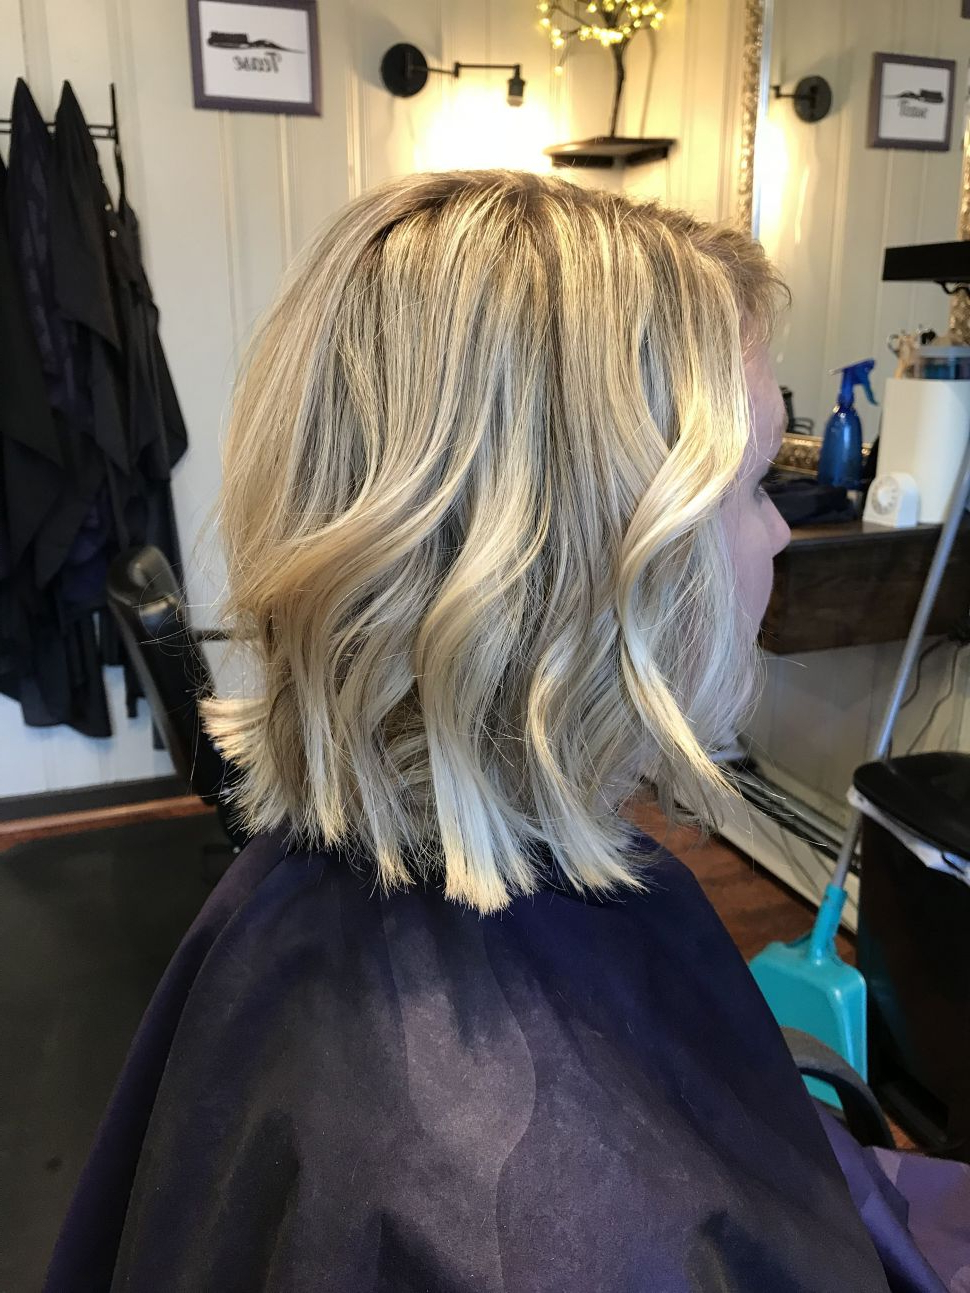 Hairstyles : Blunt Bob 22 Best Bright Ash Blonde Highlighted Intended For Bright Bob Hairstyles (View 9 of 20)